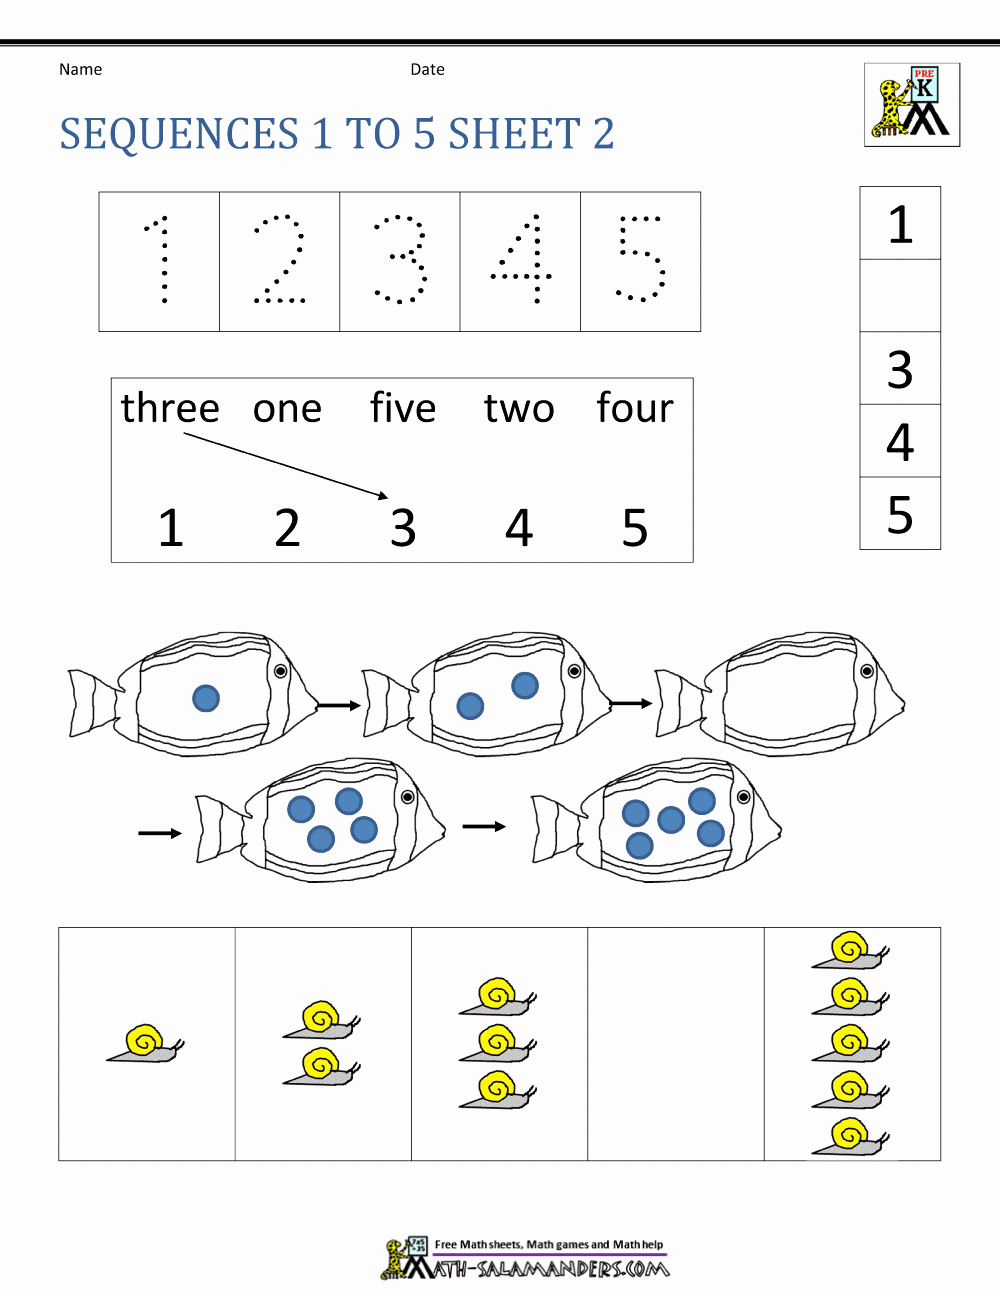 Printable Sequence Worksheets Awesome Free Printable Sequencing Worksheets 2nd Grade